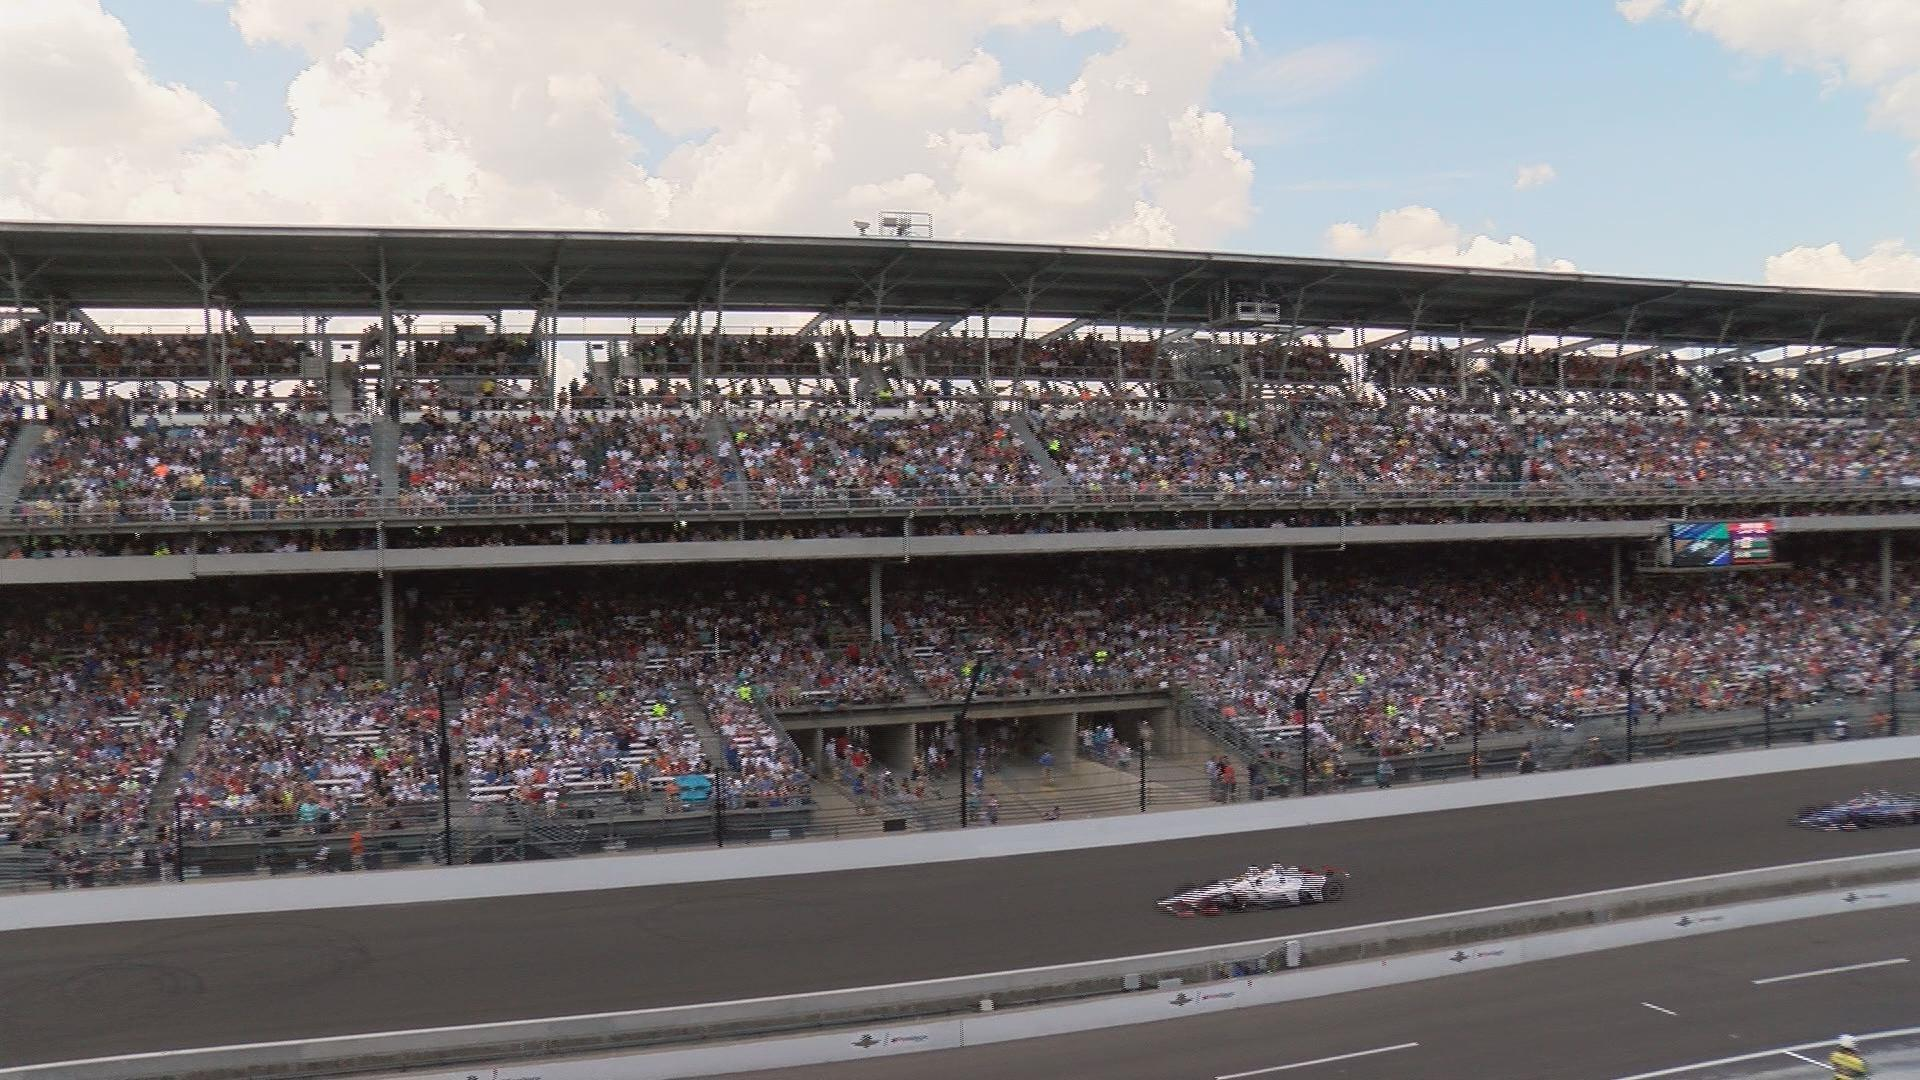 Body found in tent at Indianapolis Motor Speedway